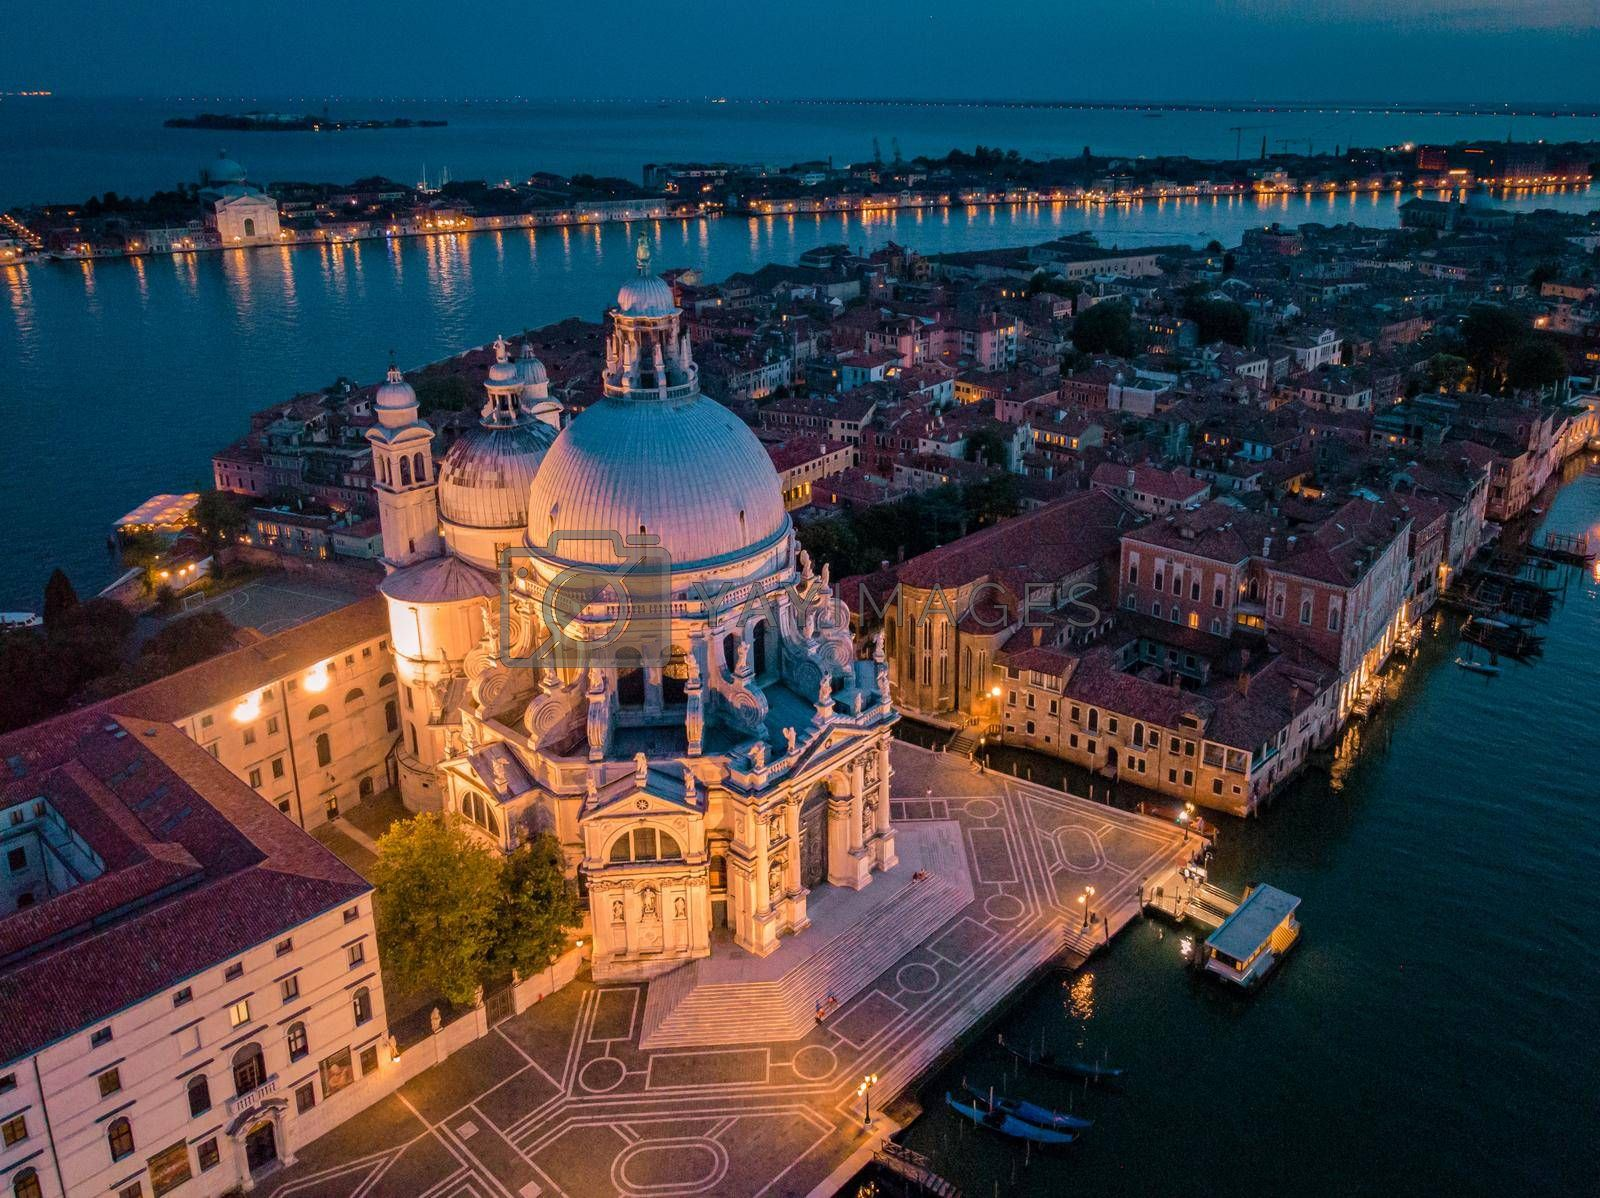 Venice from above with drone, Aerial drone photo of iconic and unique Saint Mark's square or Piazza San Marco featuring Doge's Palace, Basilica and Campanile, Venice, Italy. Europe